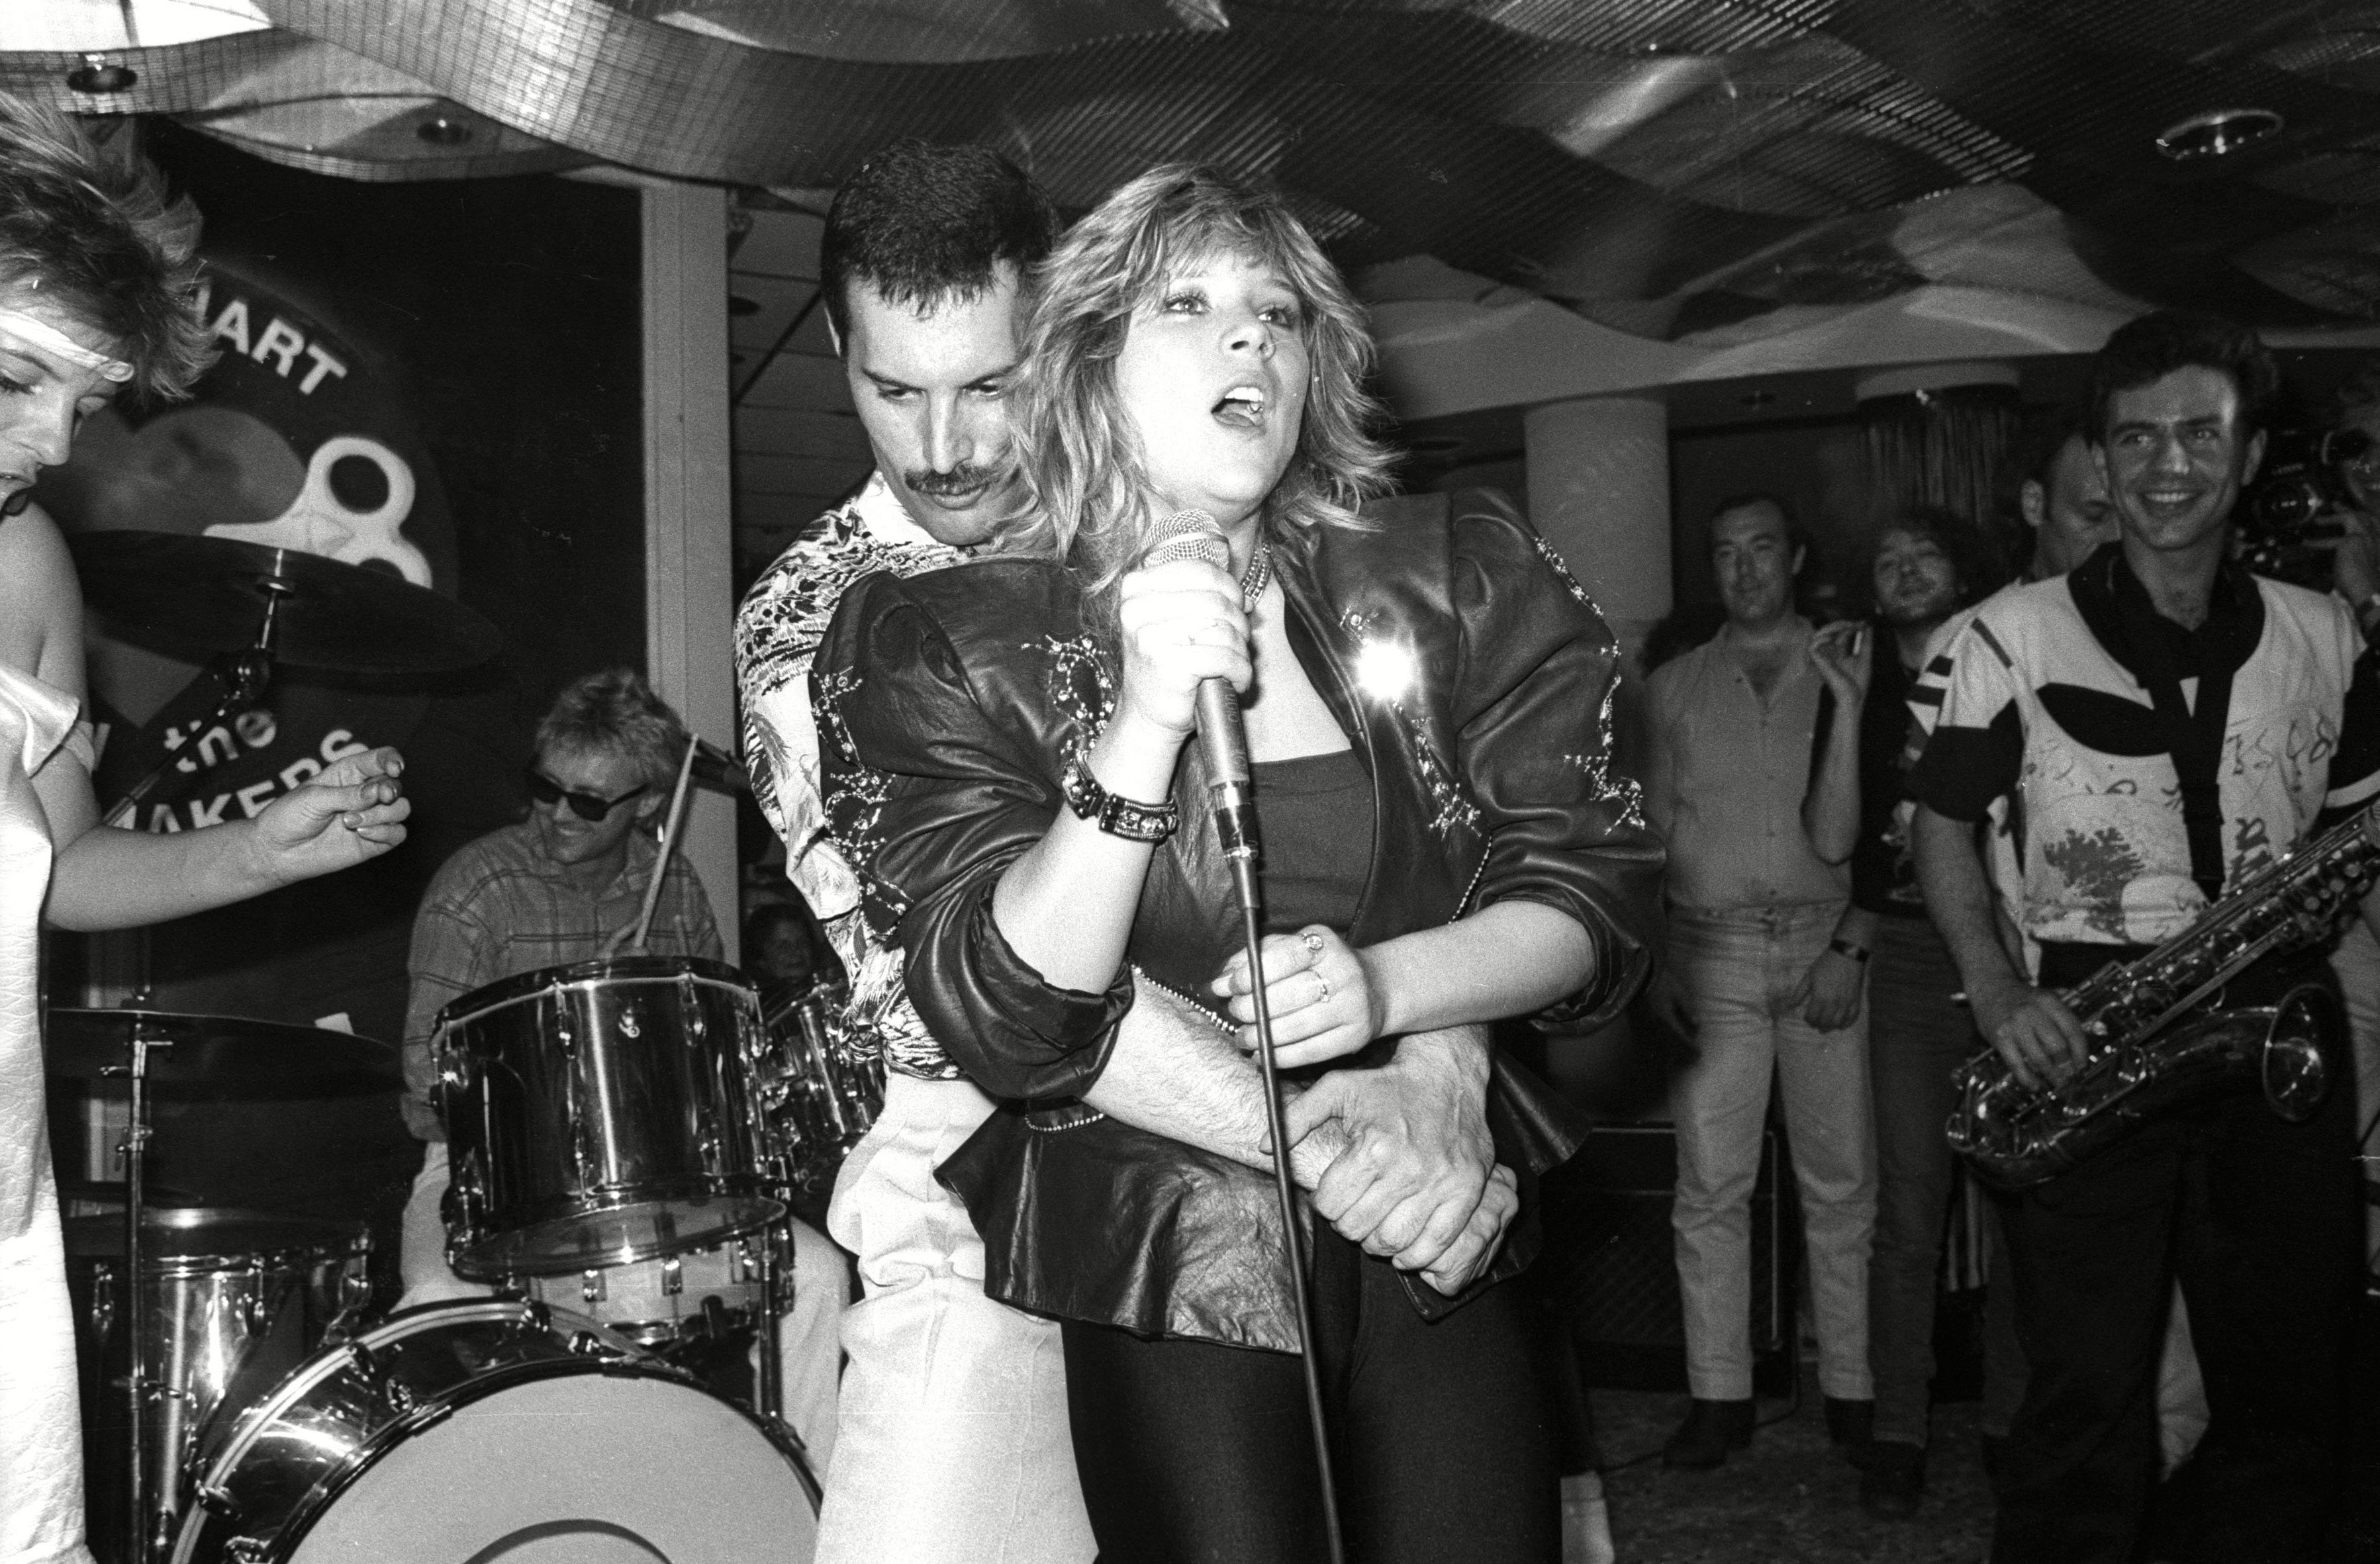 Mandatory Credit: Photo by Alan Davidson/Silverhub/REX/Shutterstock (7531703ak) Private Concert and Party at the Kensington Roof Gardens Freddie Mercury and Samantha Fox Queen Hold A Private Concert and Party and Were Billed As 'Dicky Heart and the Pacemakers' at the Kensington Roof Gardens - 11 Jul 1986